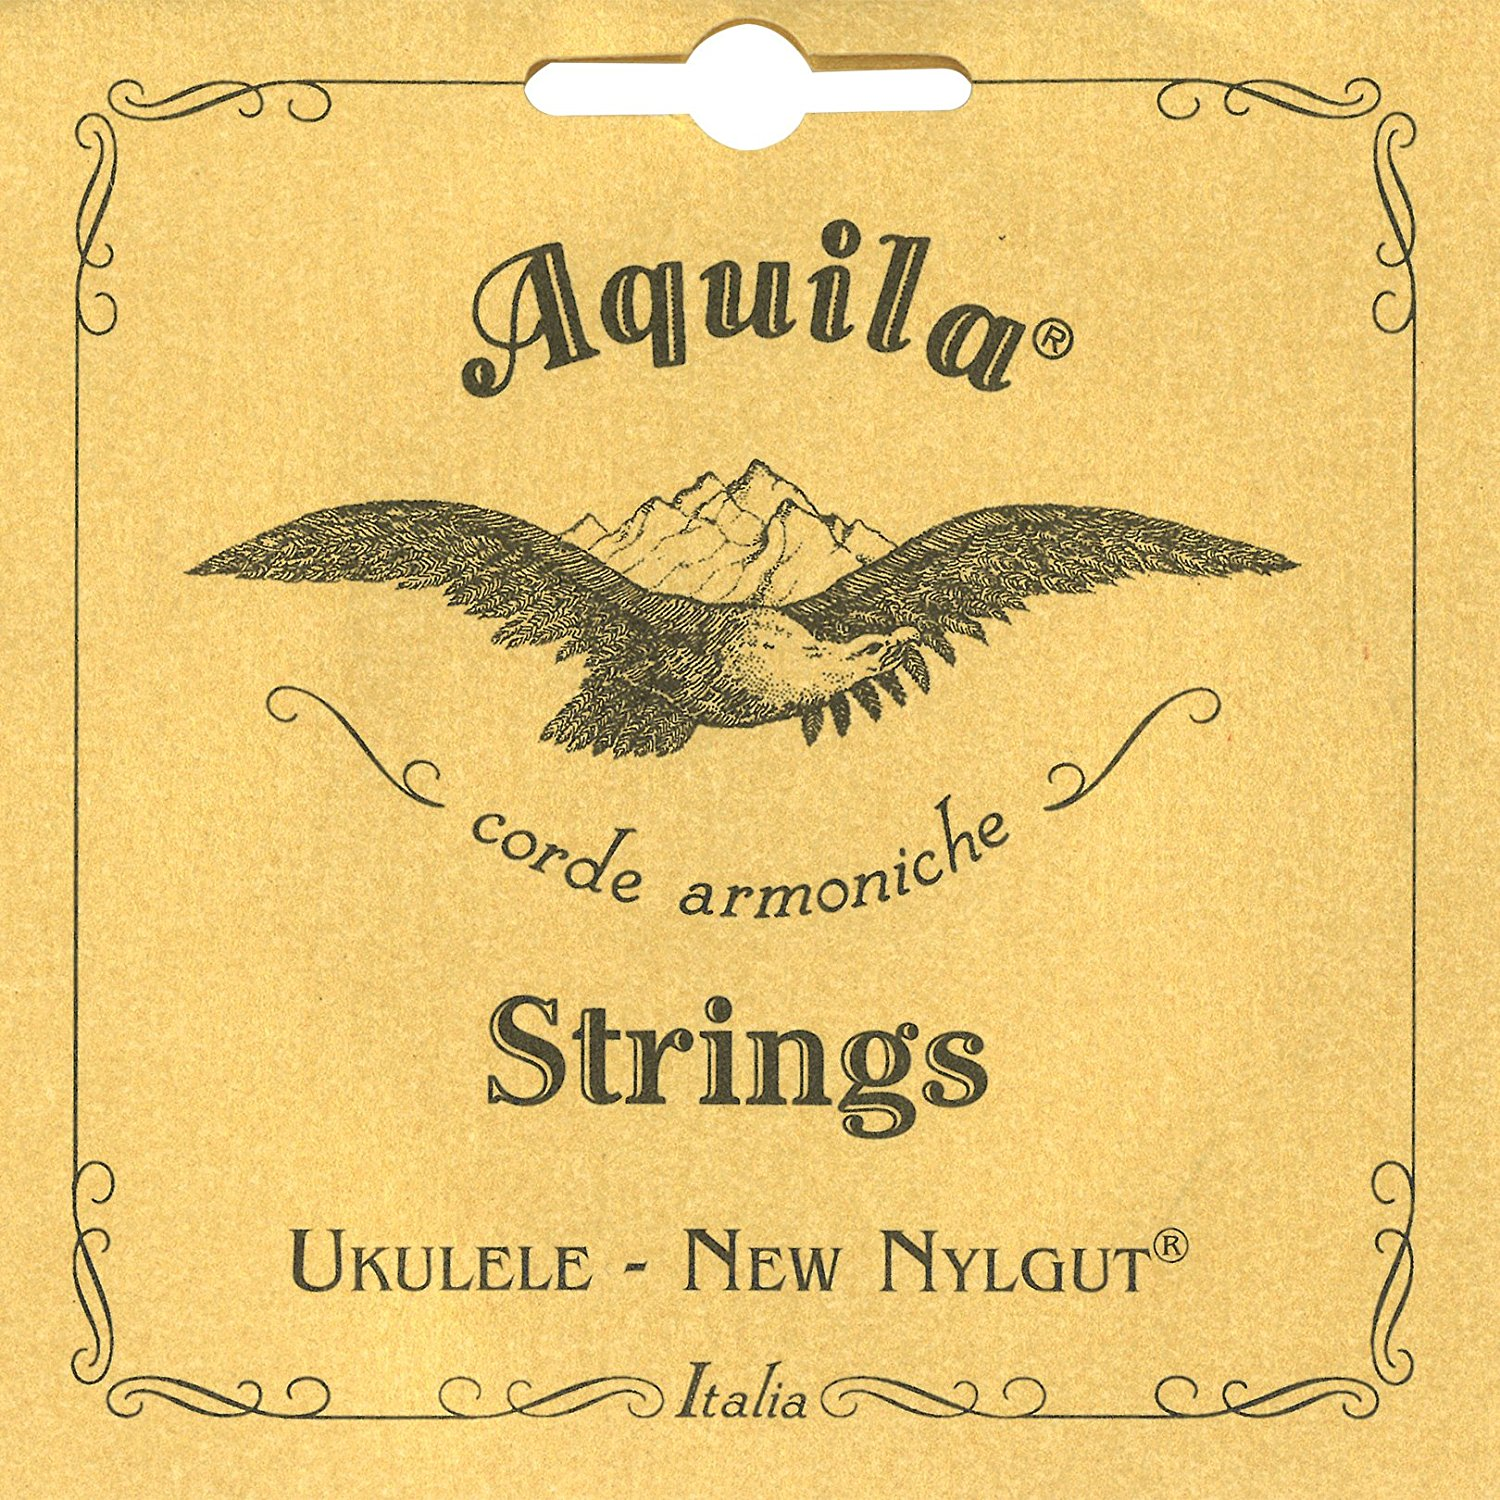 12 ukuleles to buy for beginners this christmas best ukulele strings hexwebz Image collections